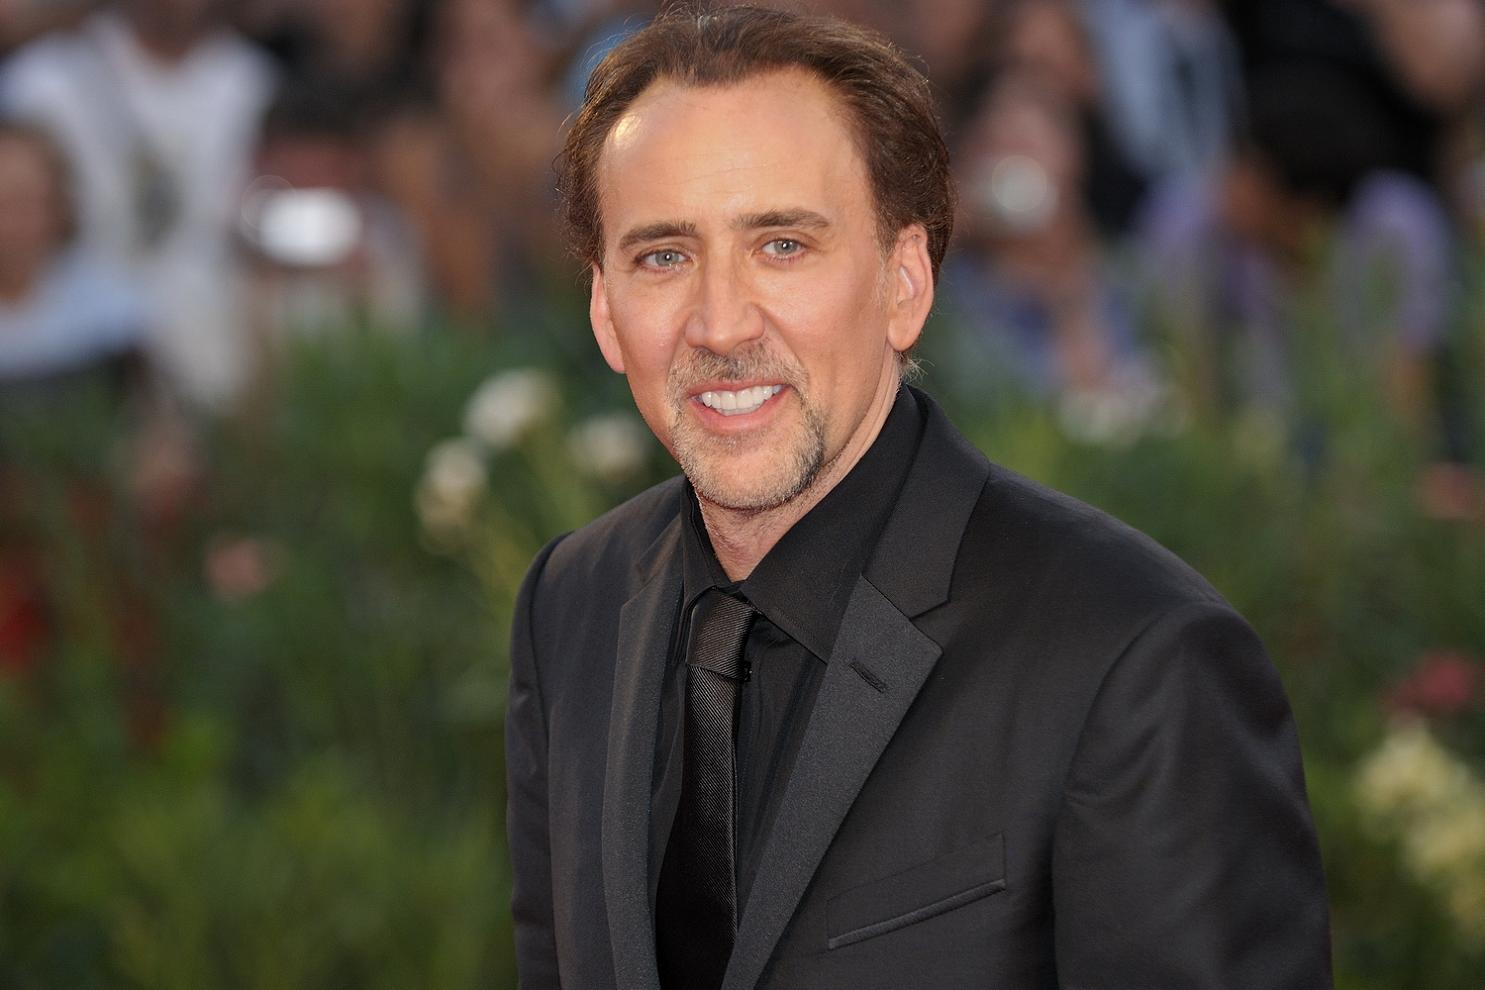 HD WALLPAPERS: NICOLAS CAGE HD WALLPAPERS FREE DOWNLOAD